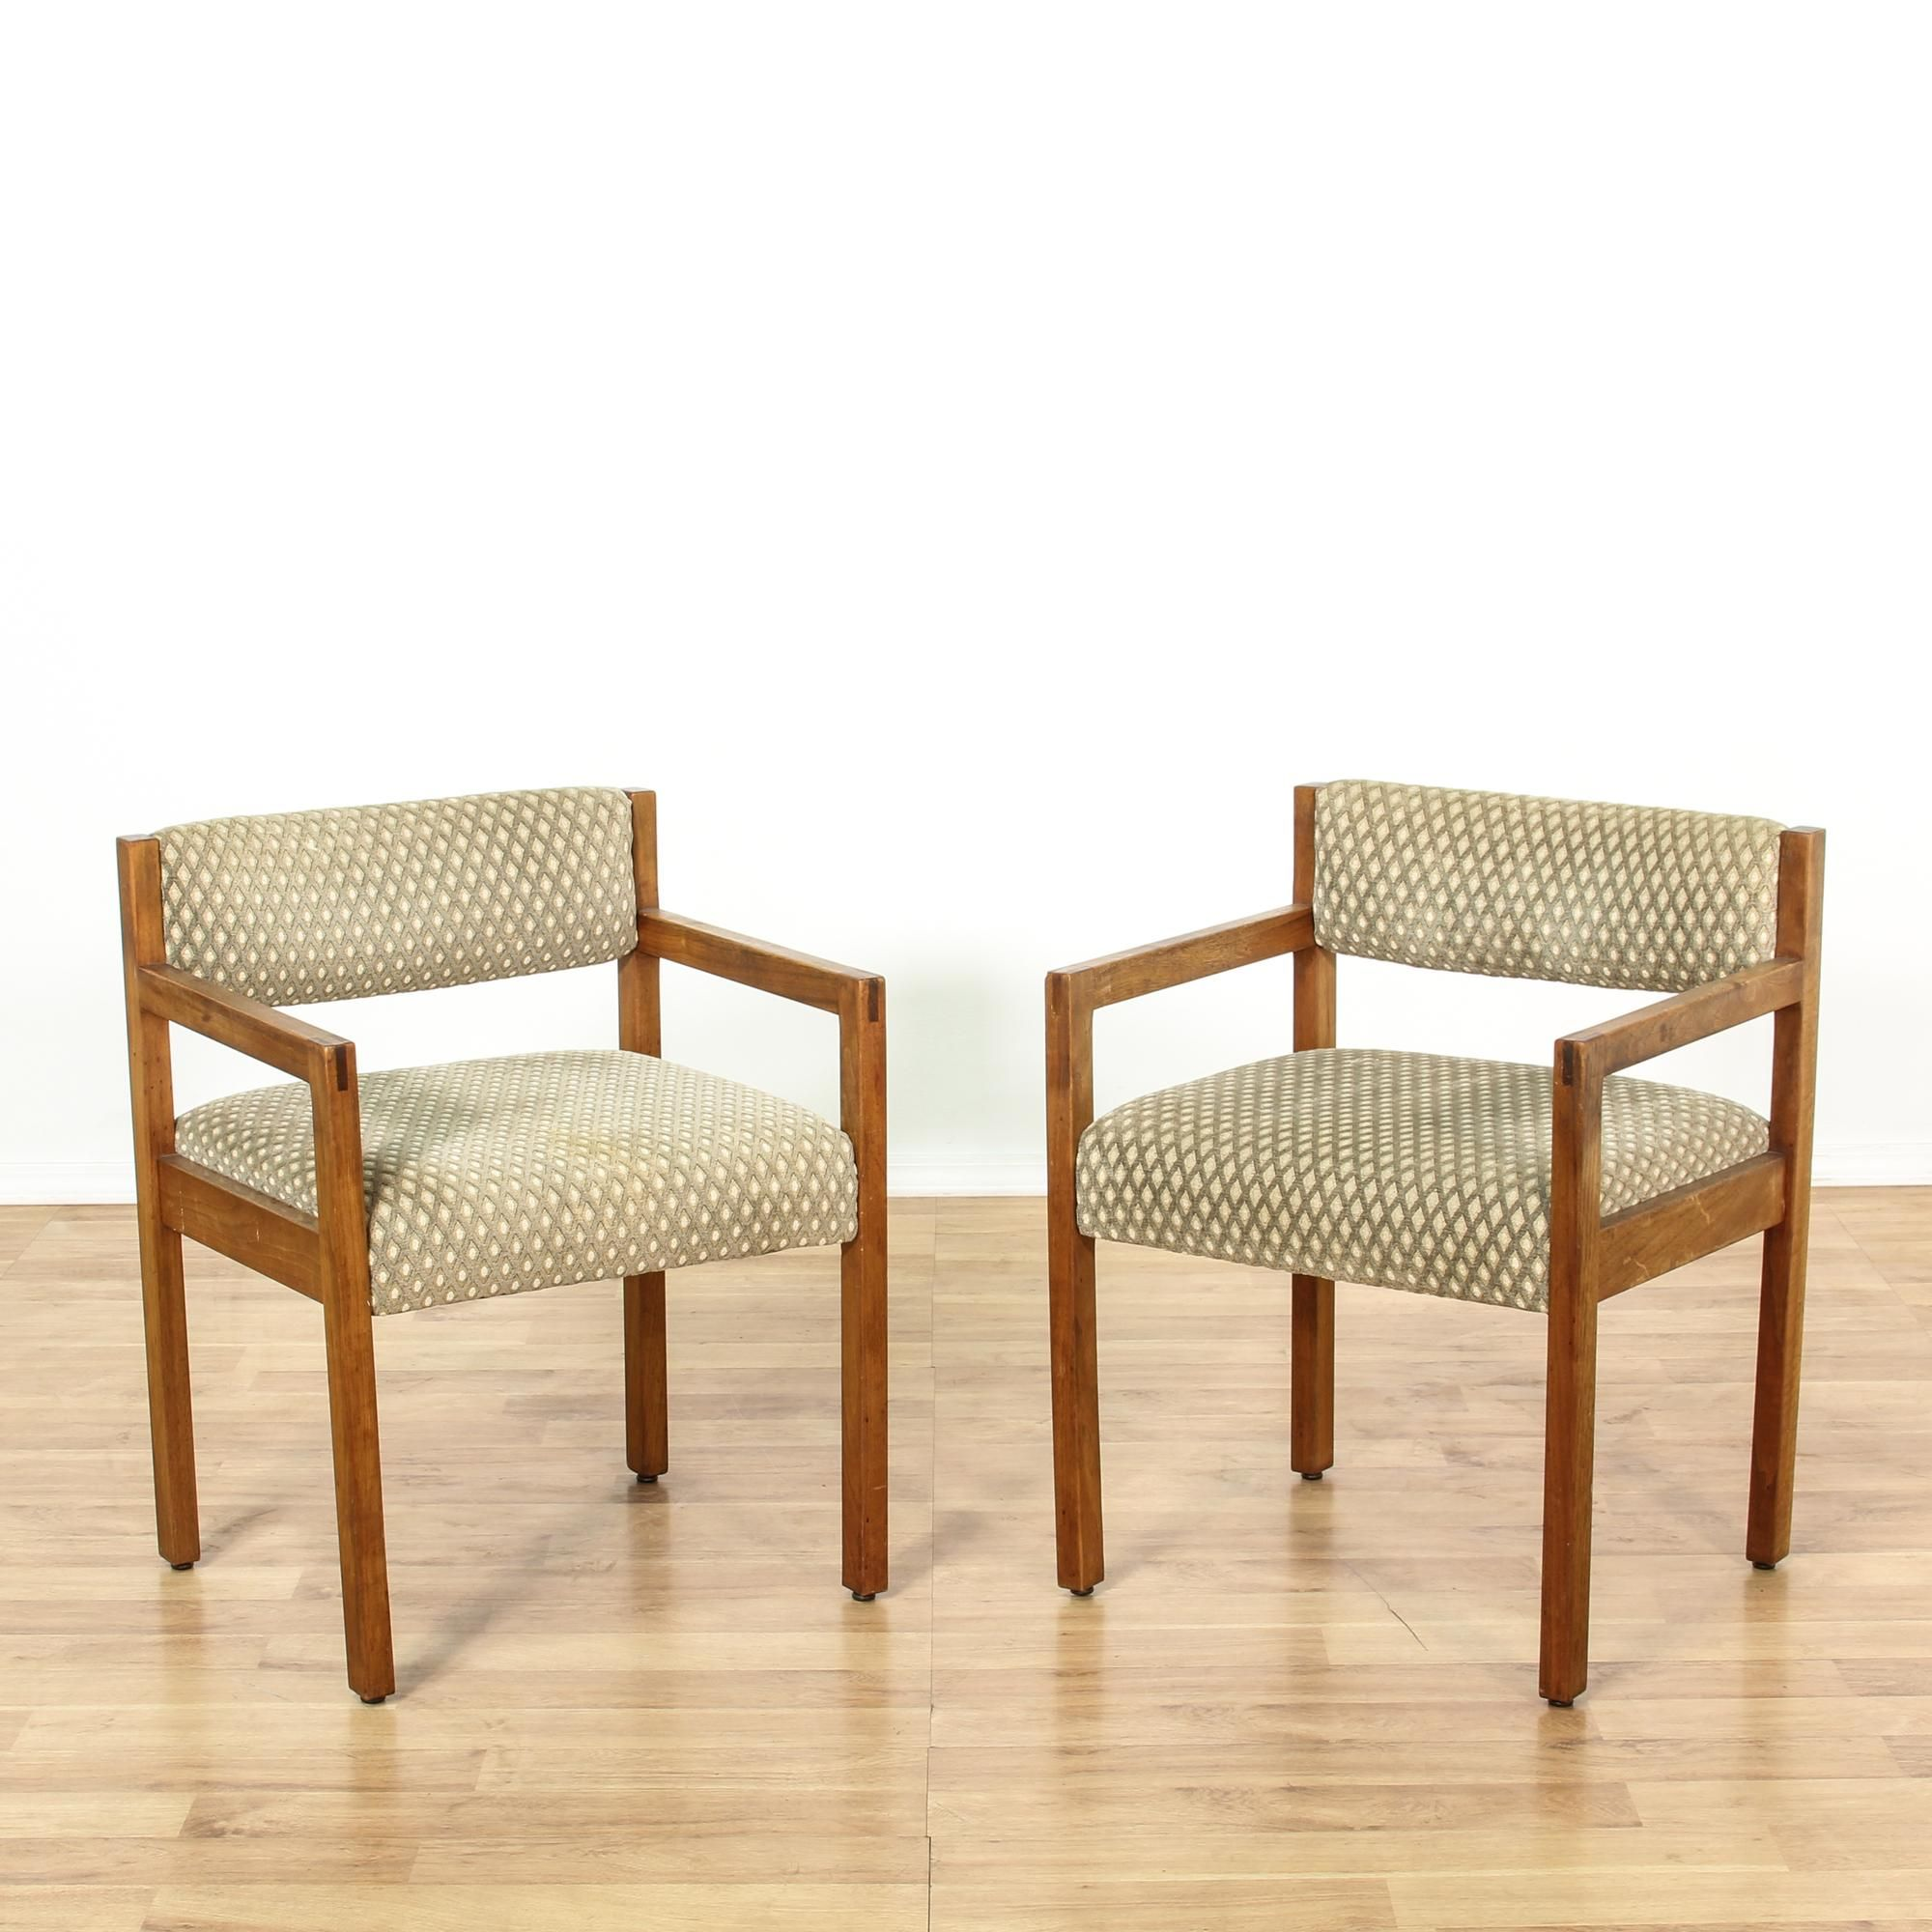 Sqaure Mid Century Modern Accent Chairs.This Pair Of Mid Century Modern Accent Chairs Are Featured In A